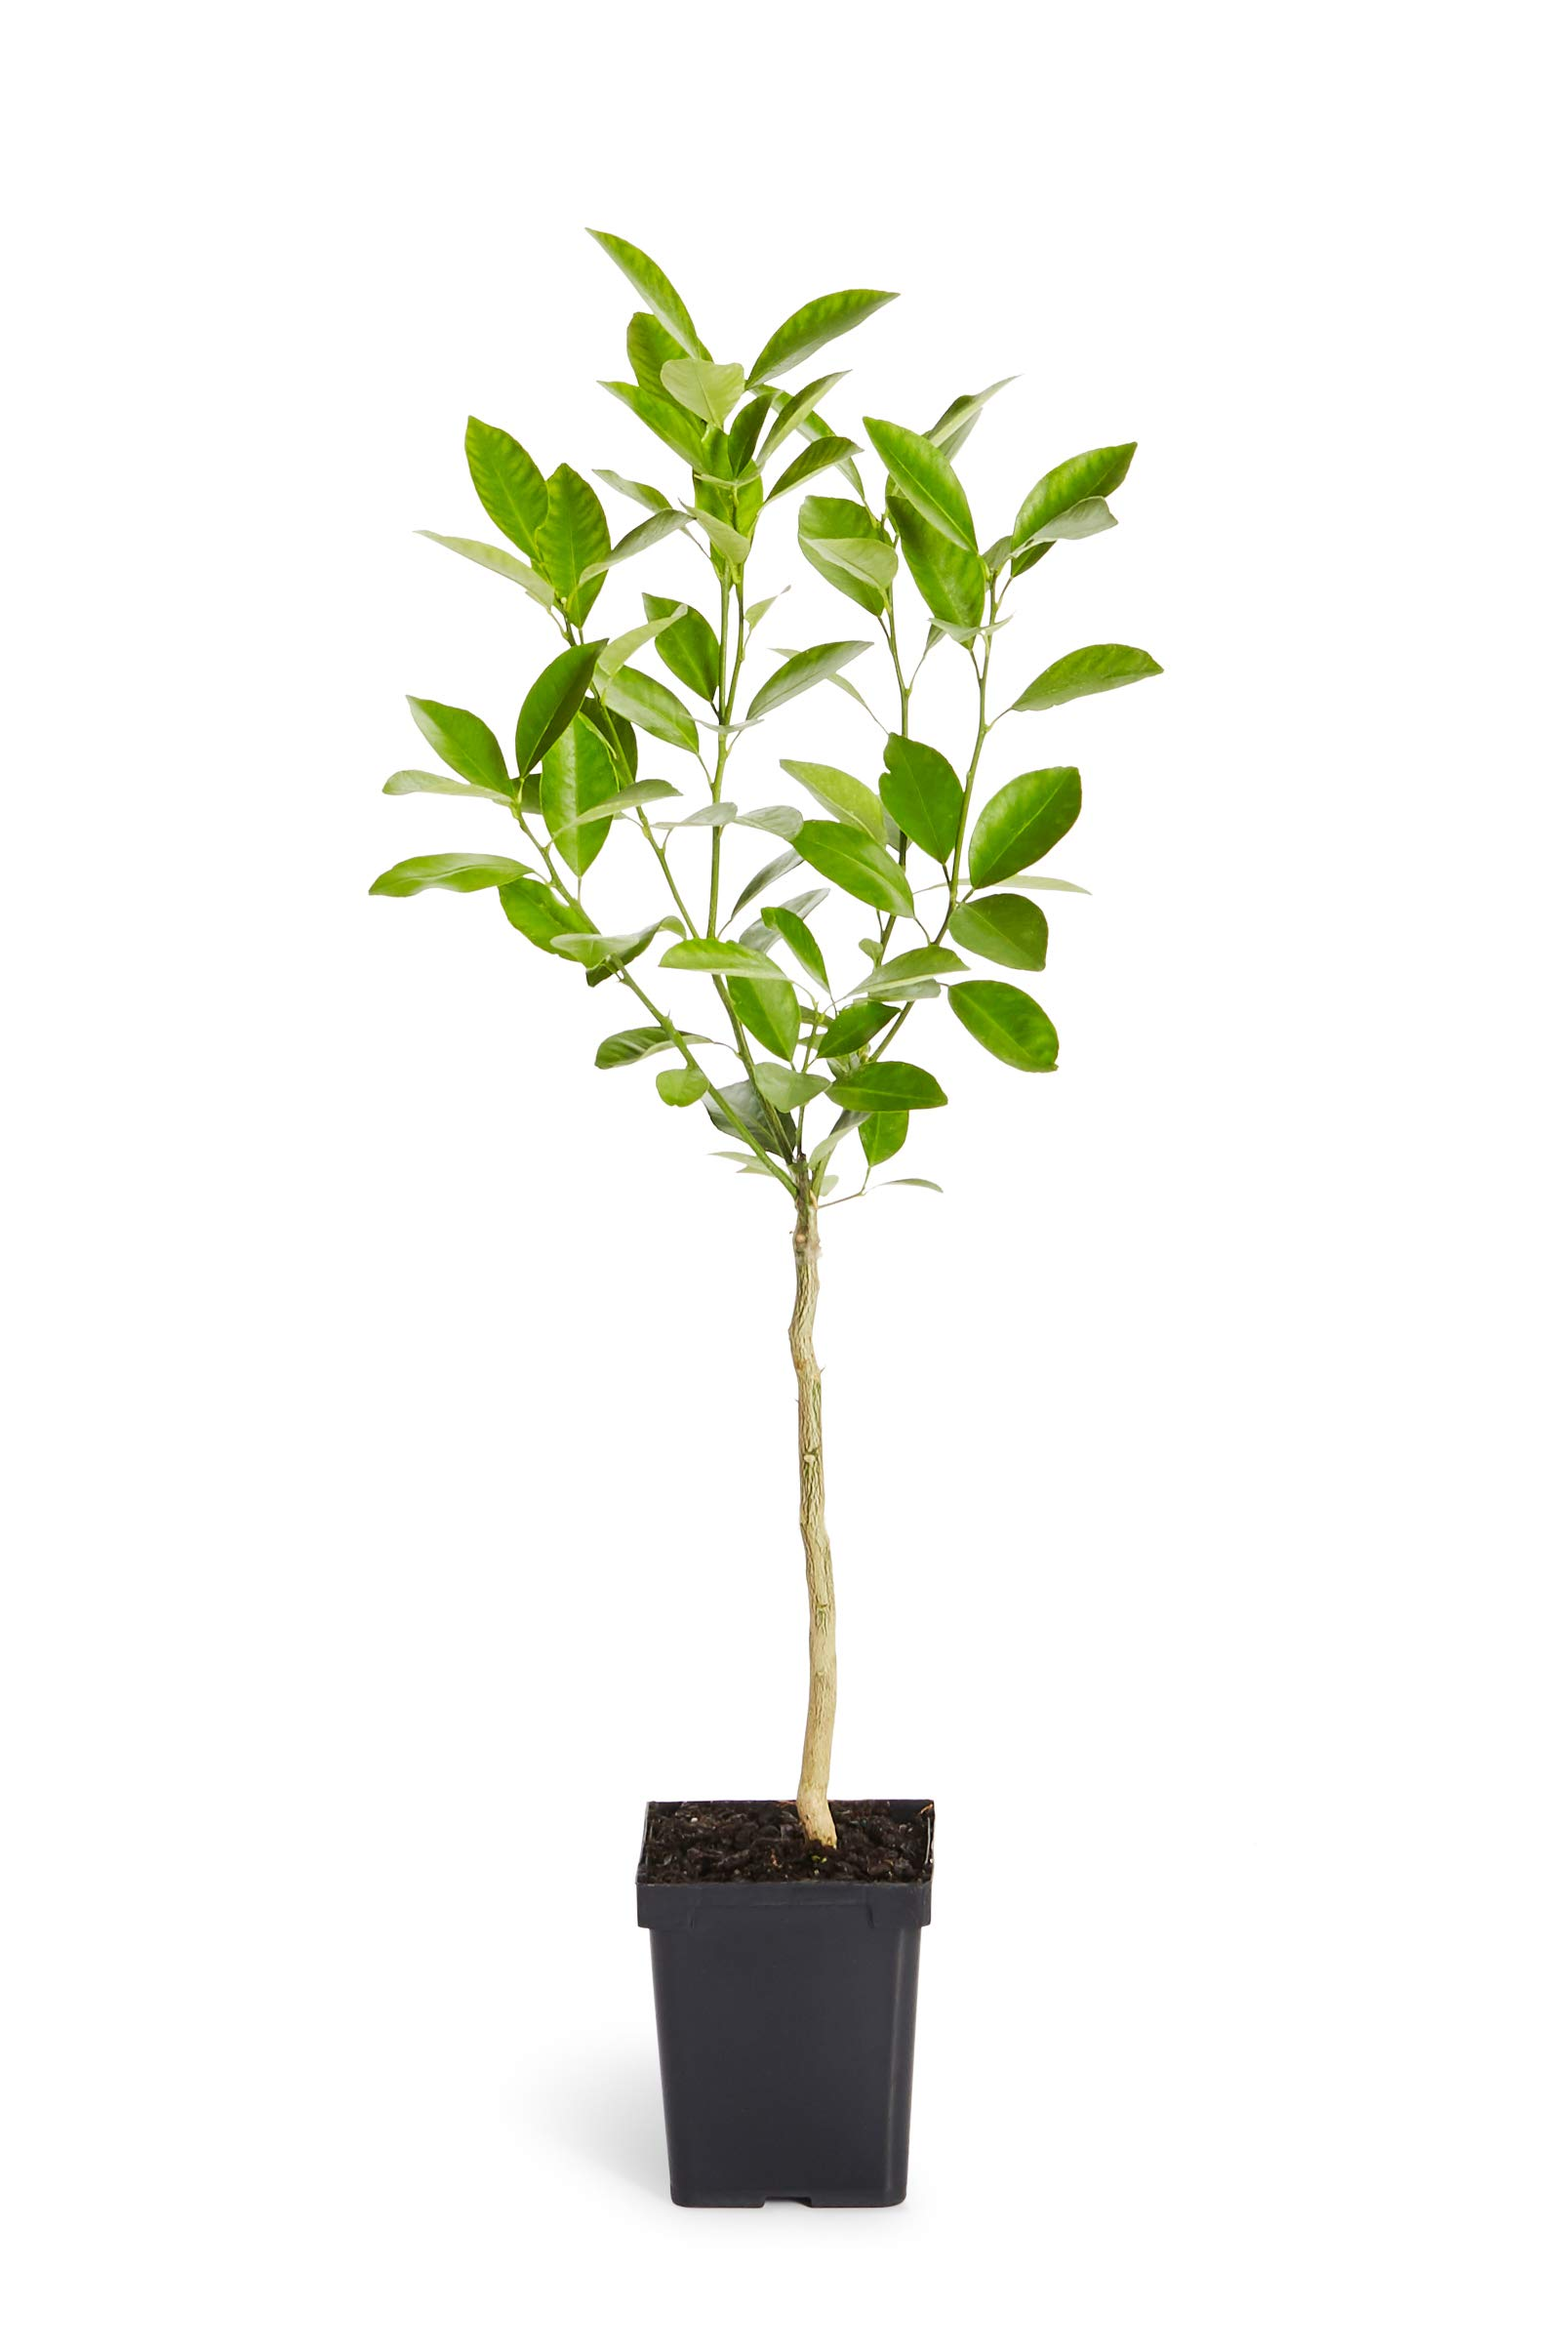 Calamondin Orange Tree - Indoor/Outdoor Patio Citrus Trees, Ready to Give Fruit - 1-2 feet Tall - Cannot Ship to FL, CA, TX, LA or AZ by Brighter Blooms